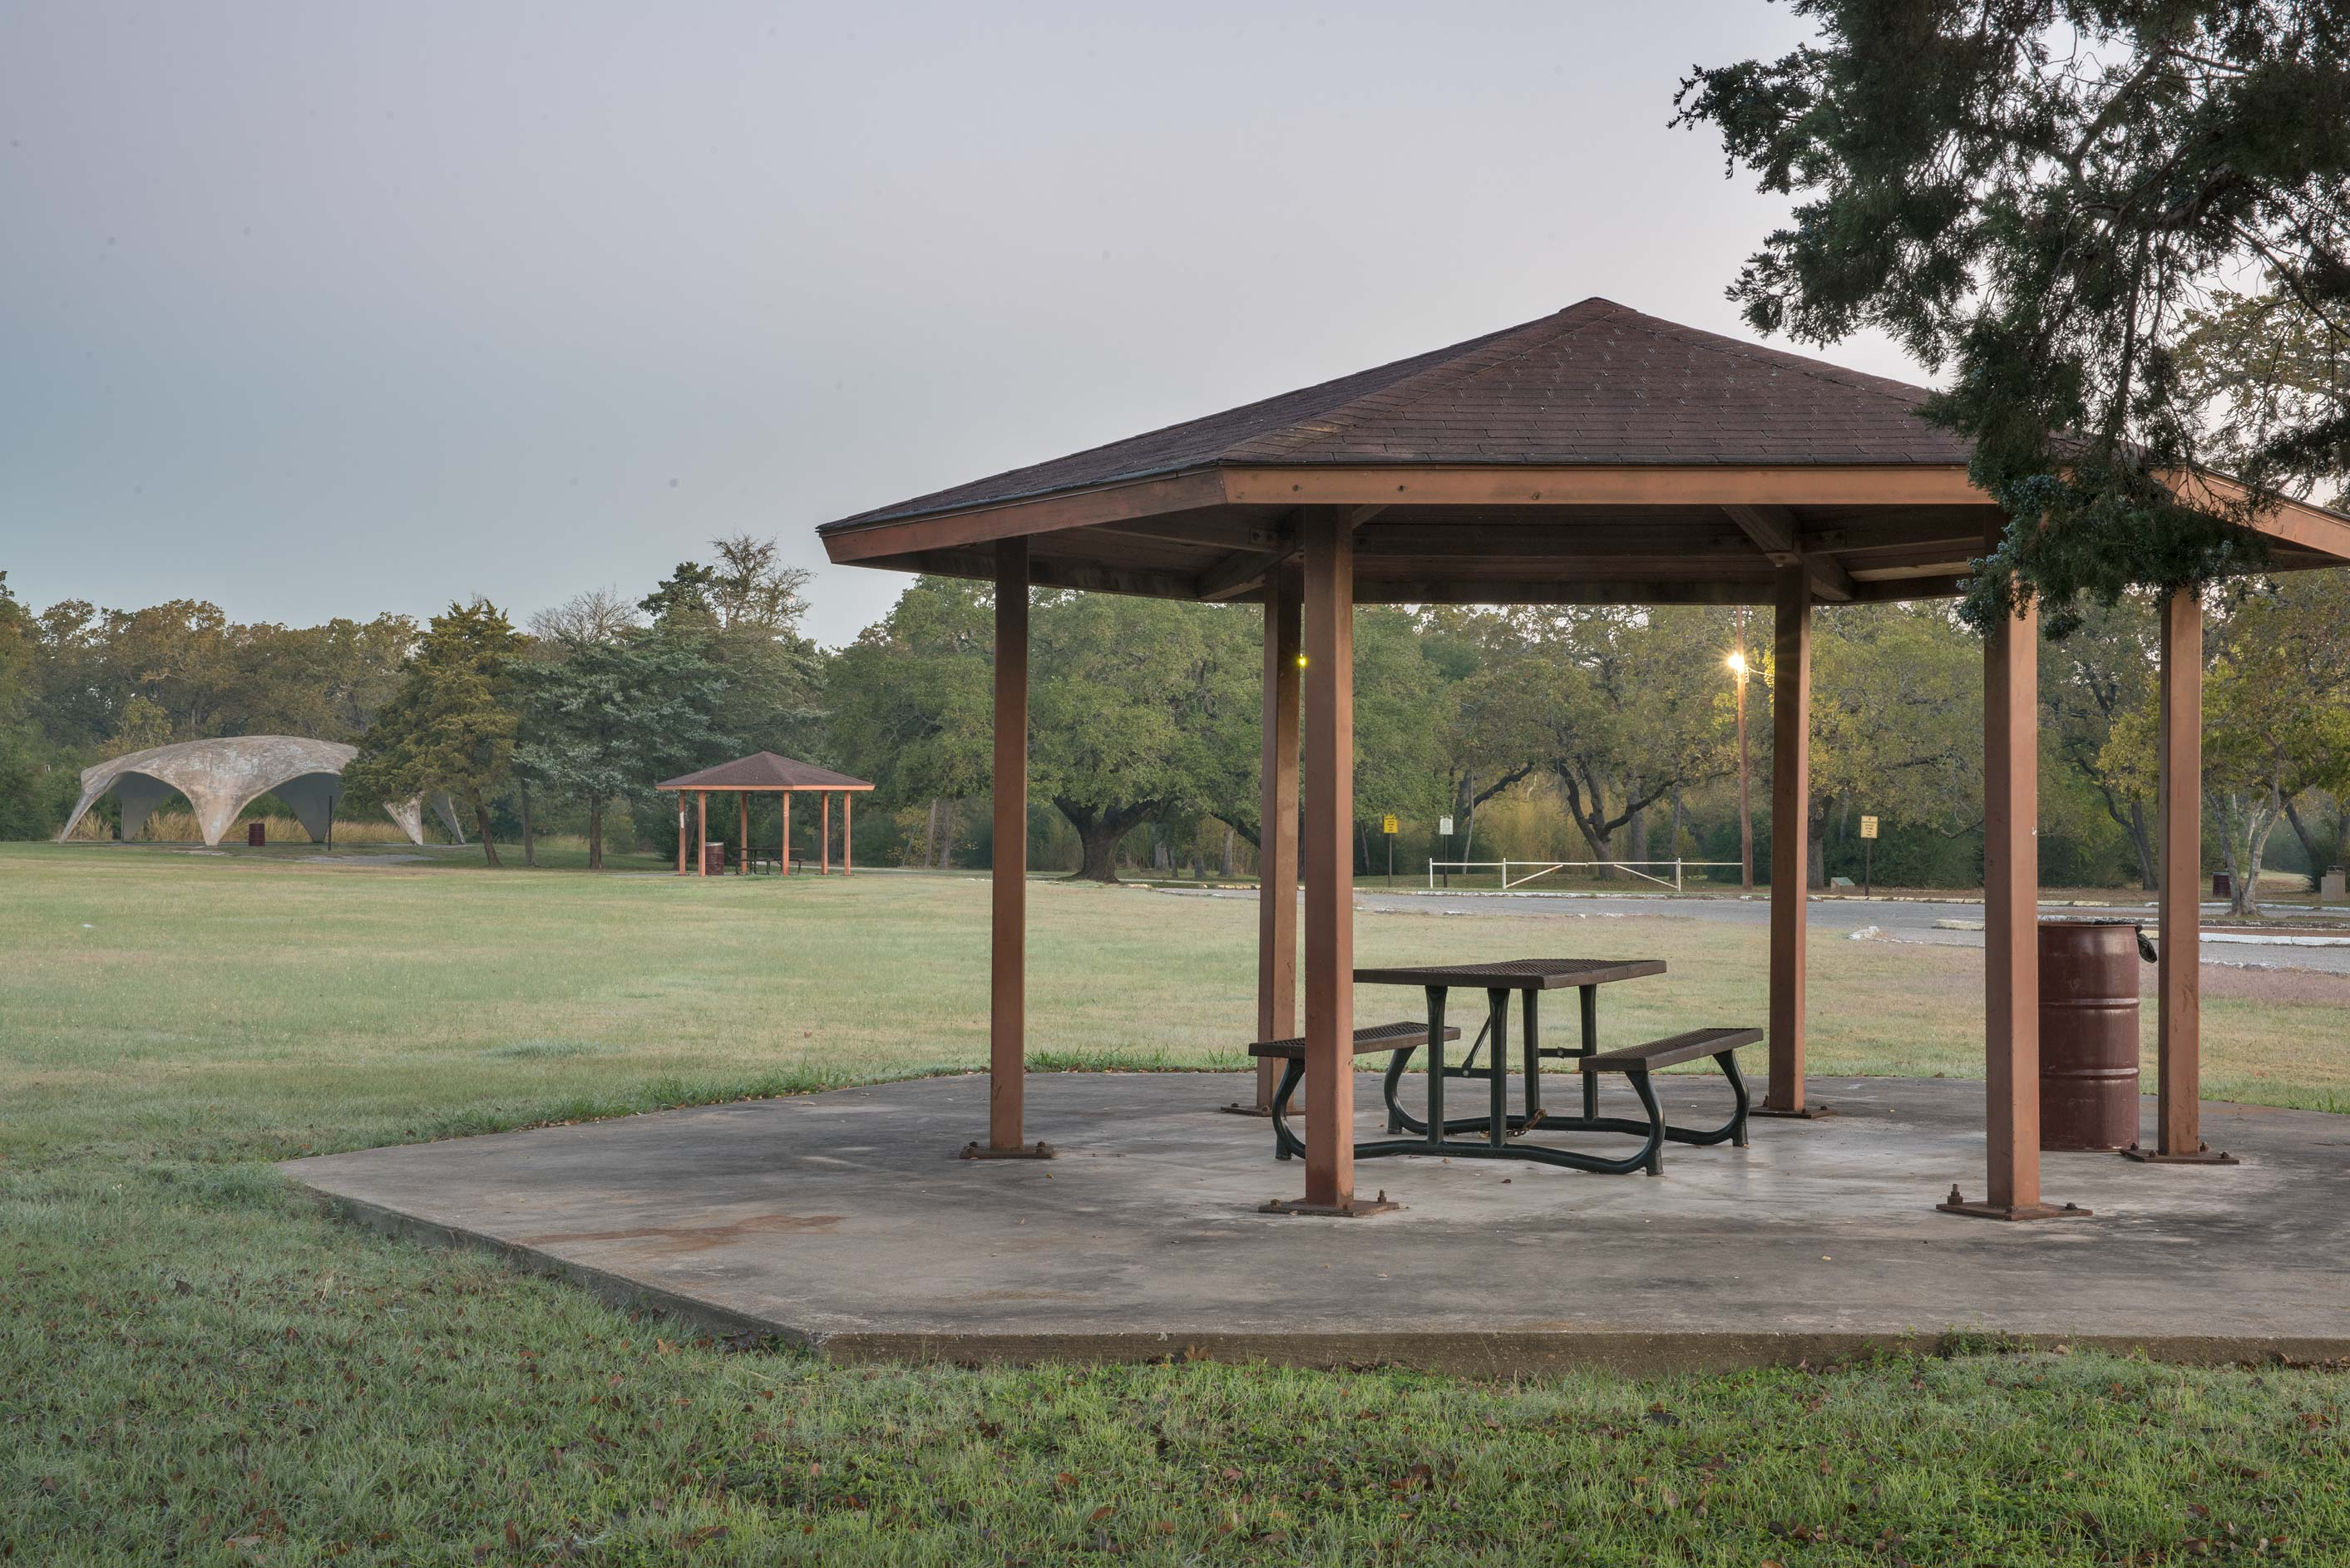 Picnic grounds in Hensel Park. College Station, Texas